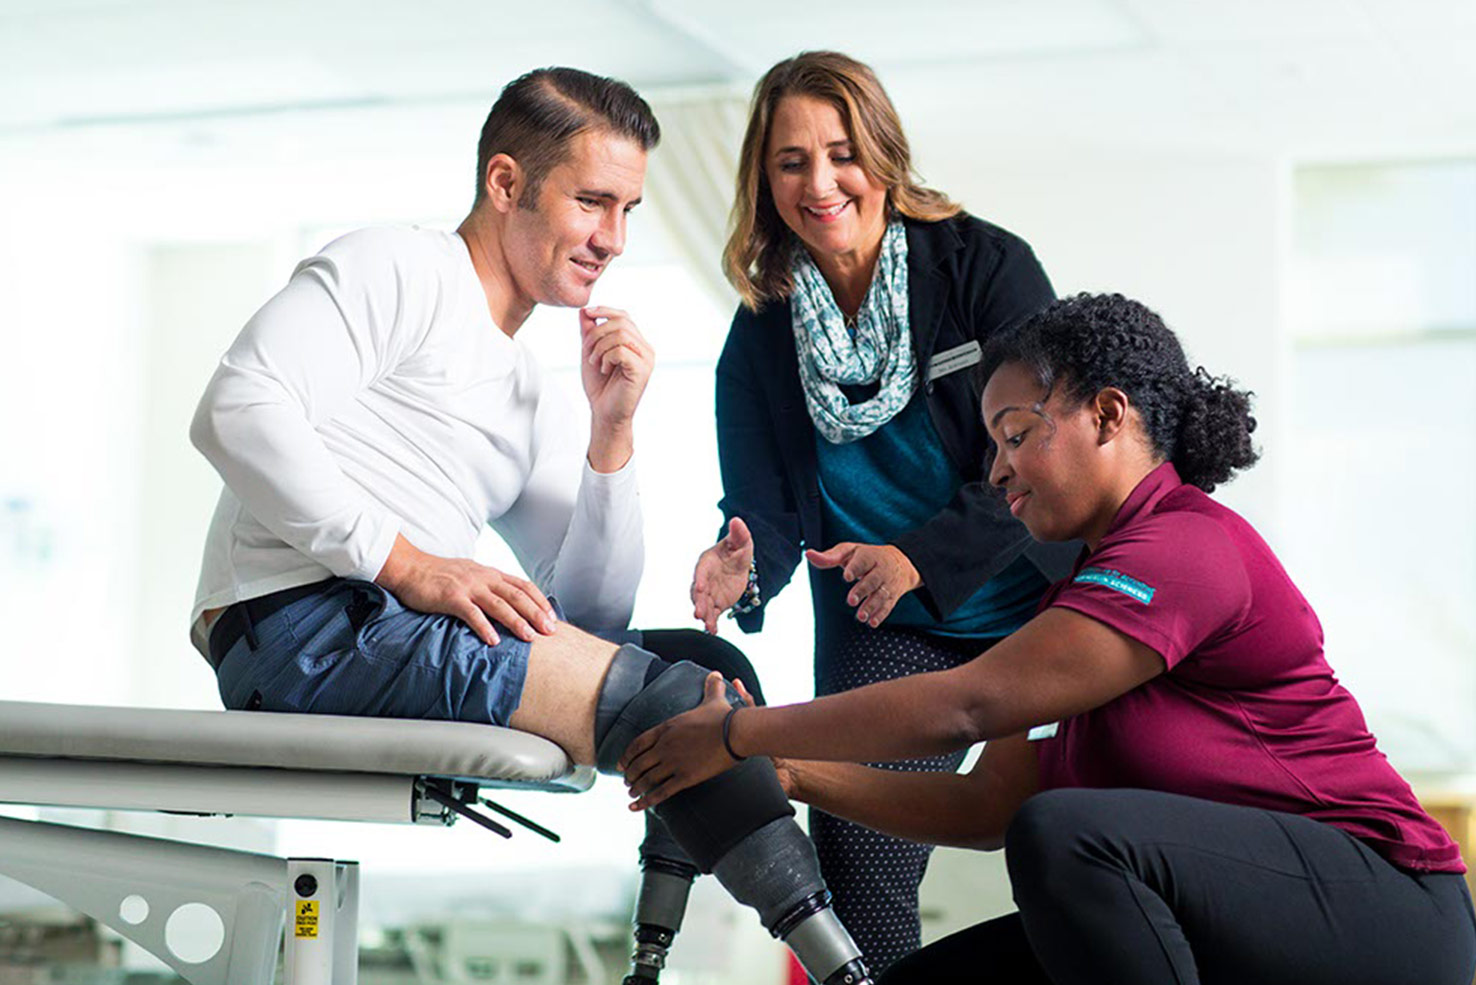 occupational therapist learning how to put a prosthetic leg on a patient